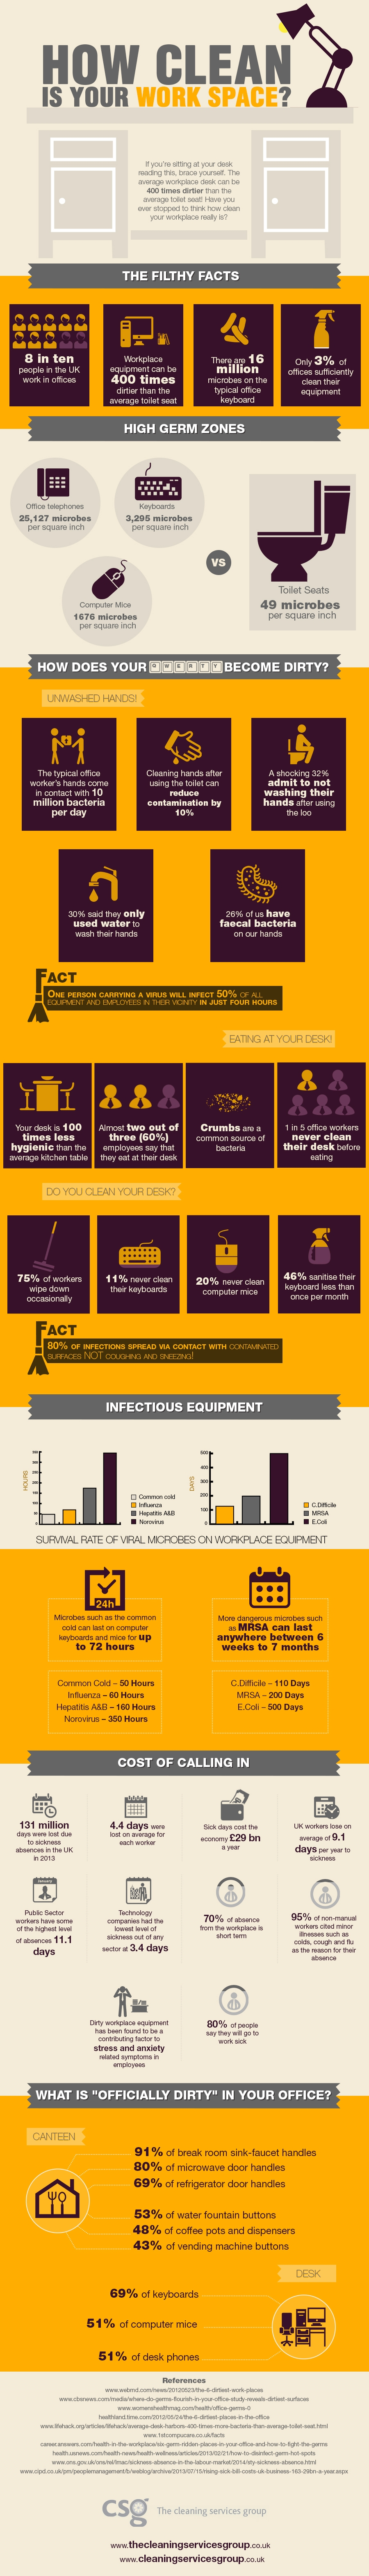 Sources Of Contamination in The Workplace